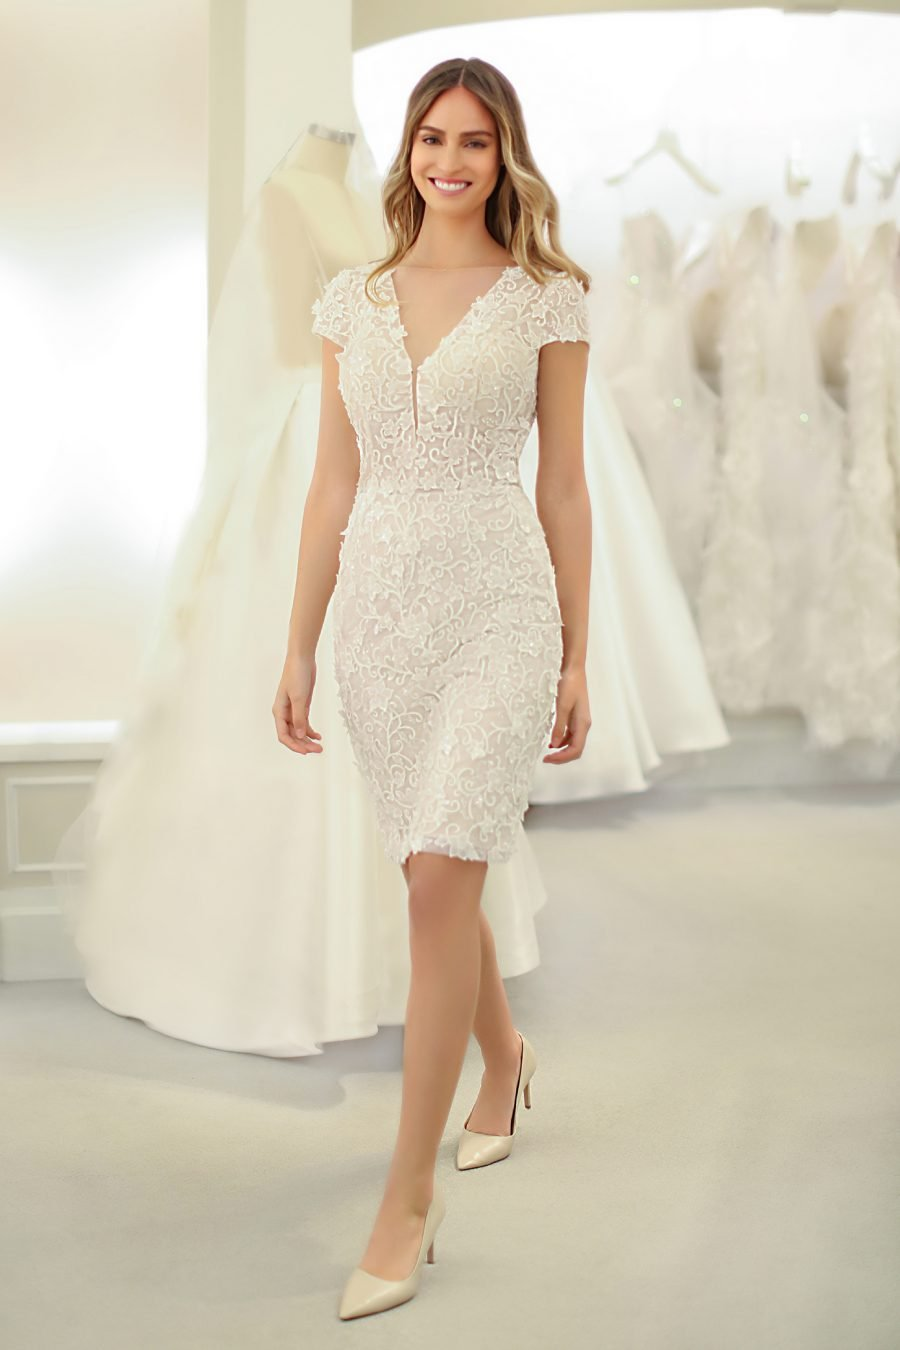 Michelle Roth Gown Stye Reese